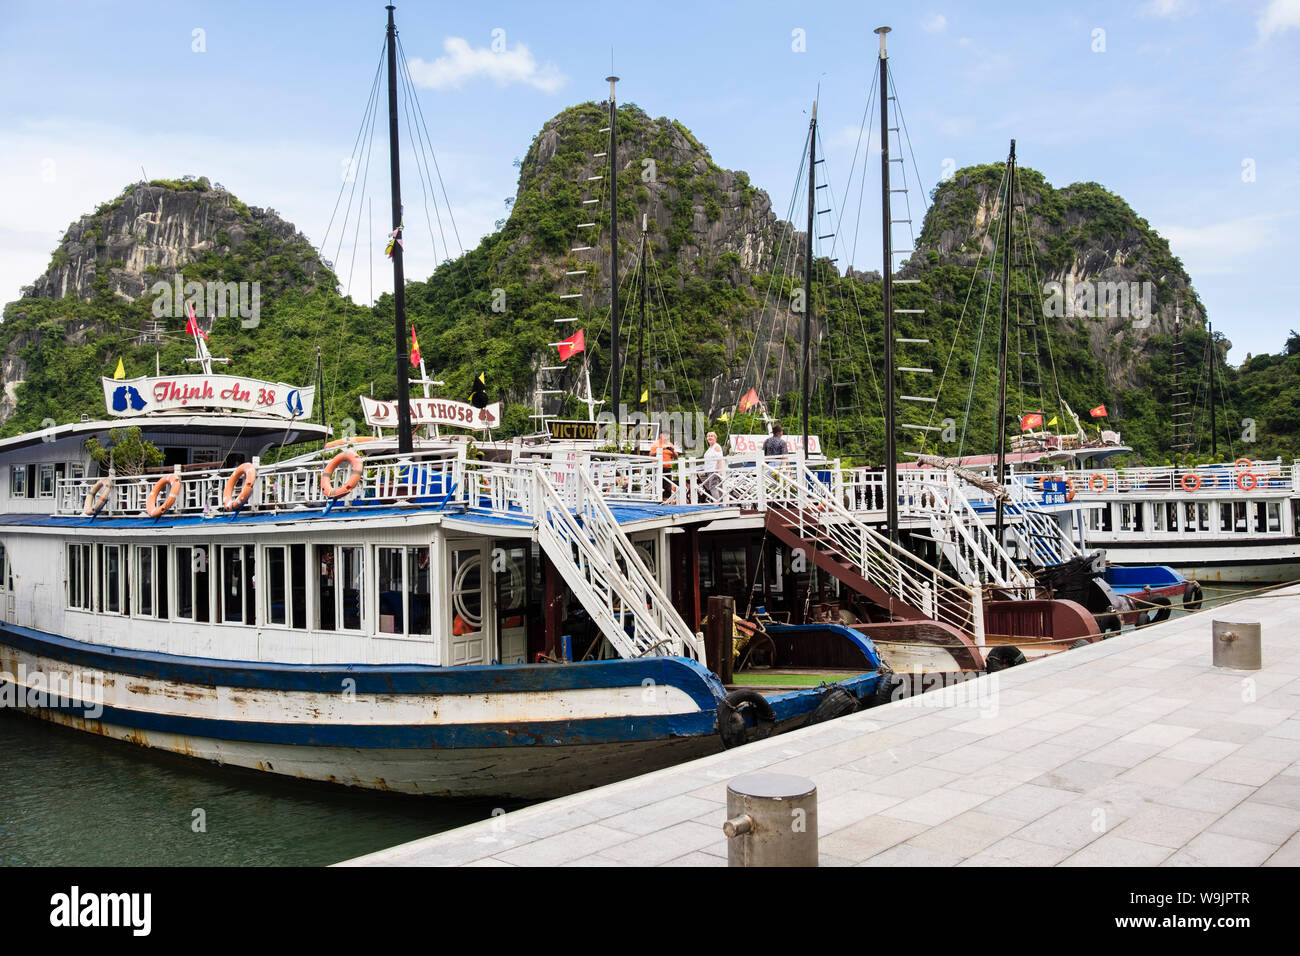 Tourist boats moored up for visit to Hang Dau Go caves grottoes in Halong Bay in South China Sea. Dau Go Island, Quang Ninh, Vietnam, Asia Stock Photo